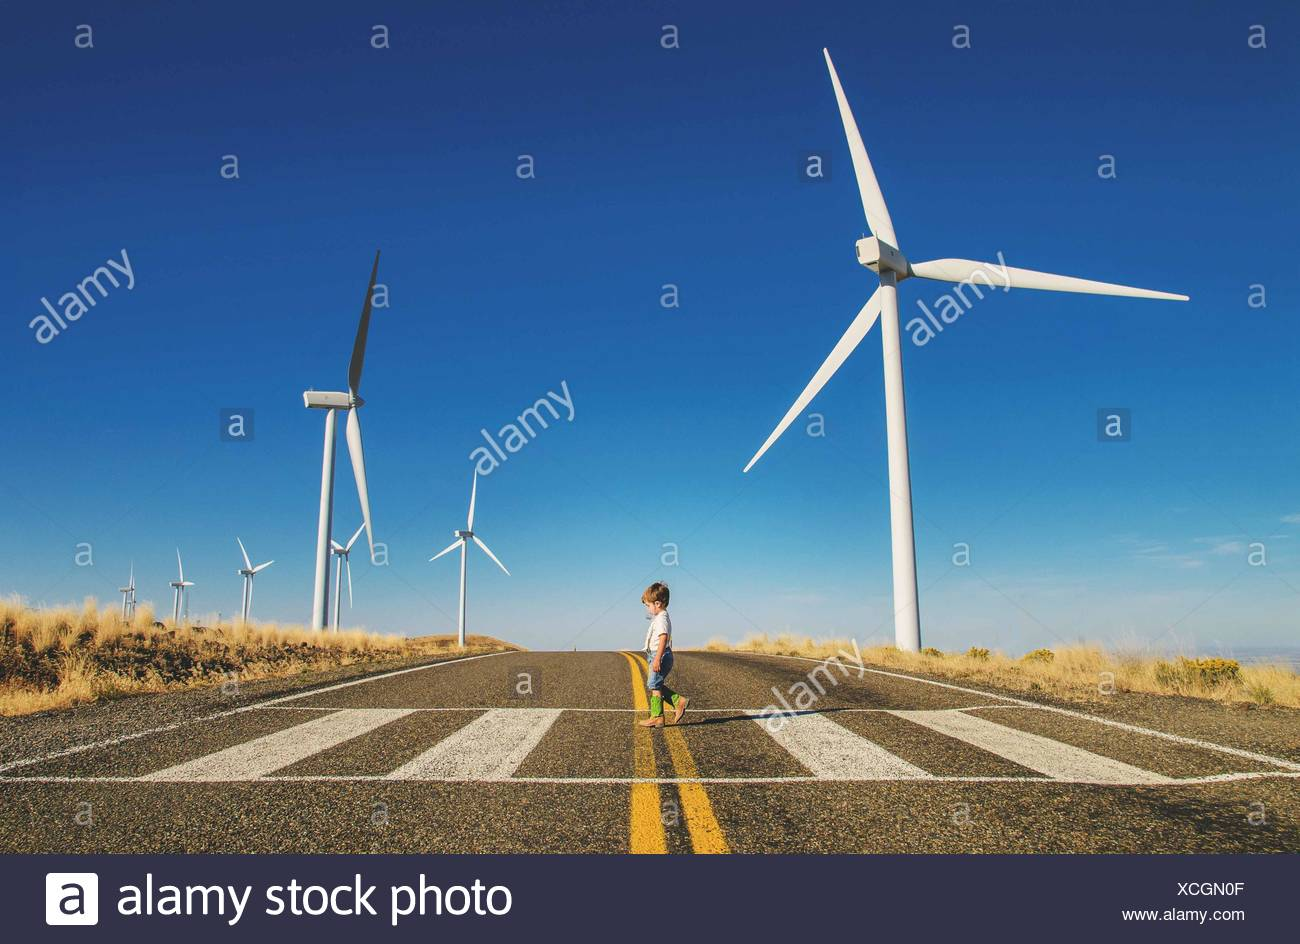 Young boy (2-3) walking across road with wind mills on background Stock Photo